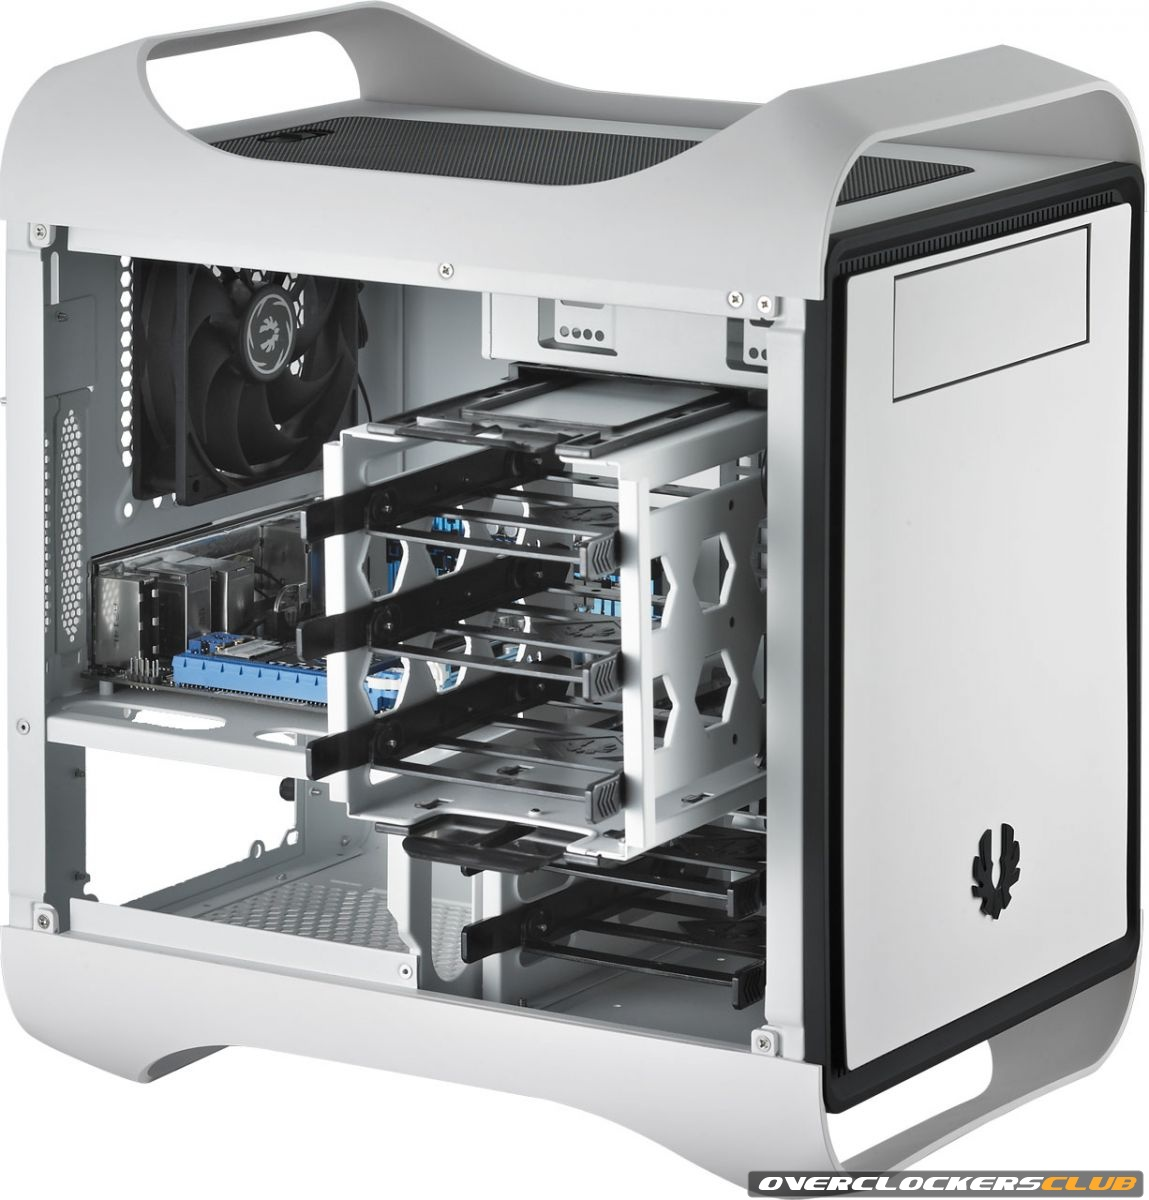 The BitFenix Prodigy - A Flexible Mini-ITX Case